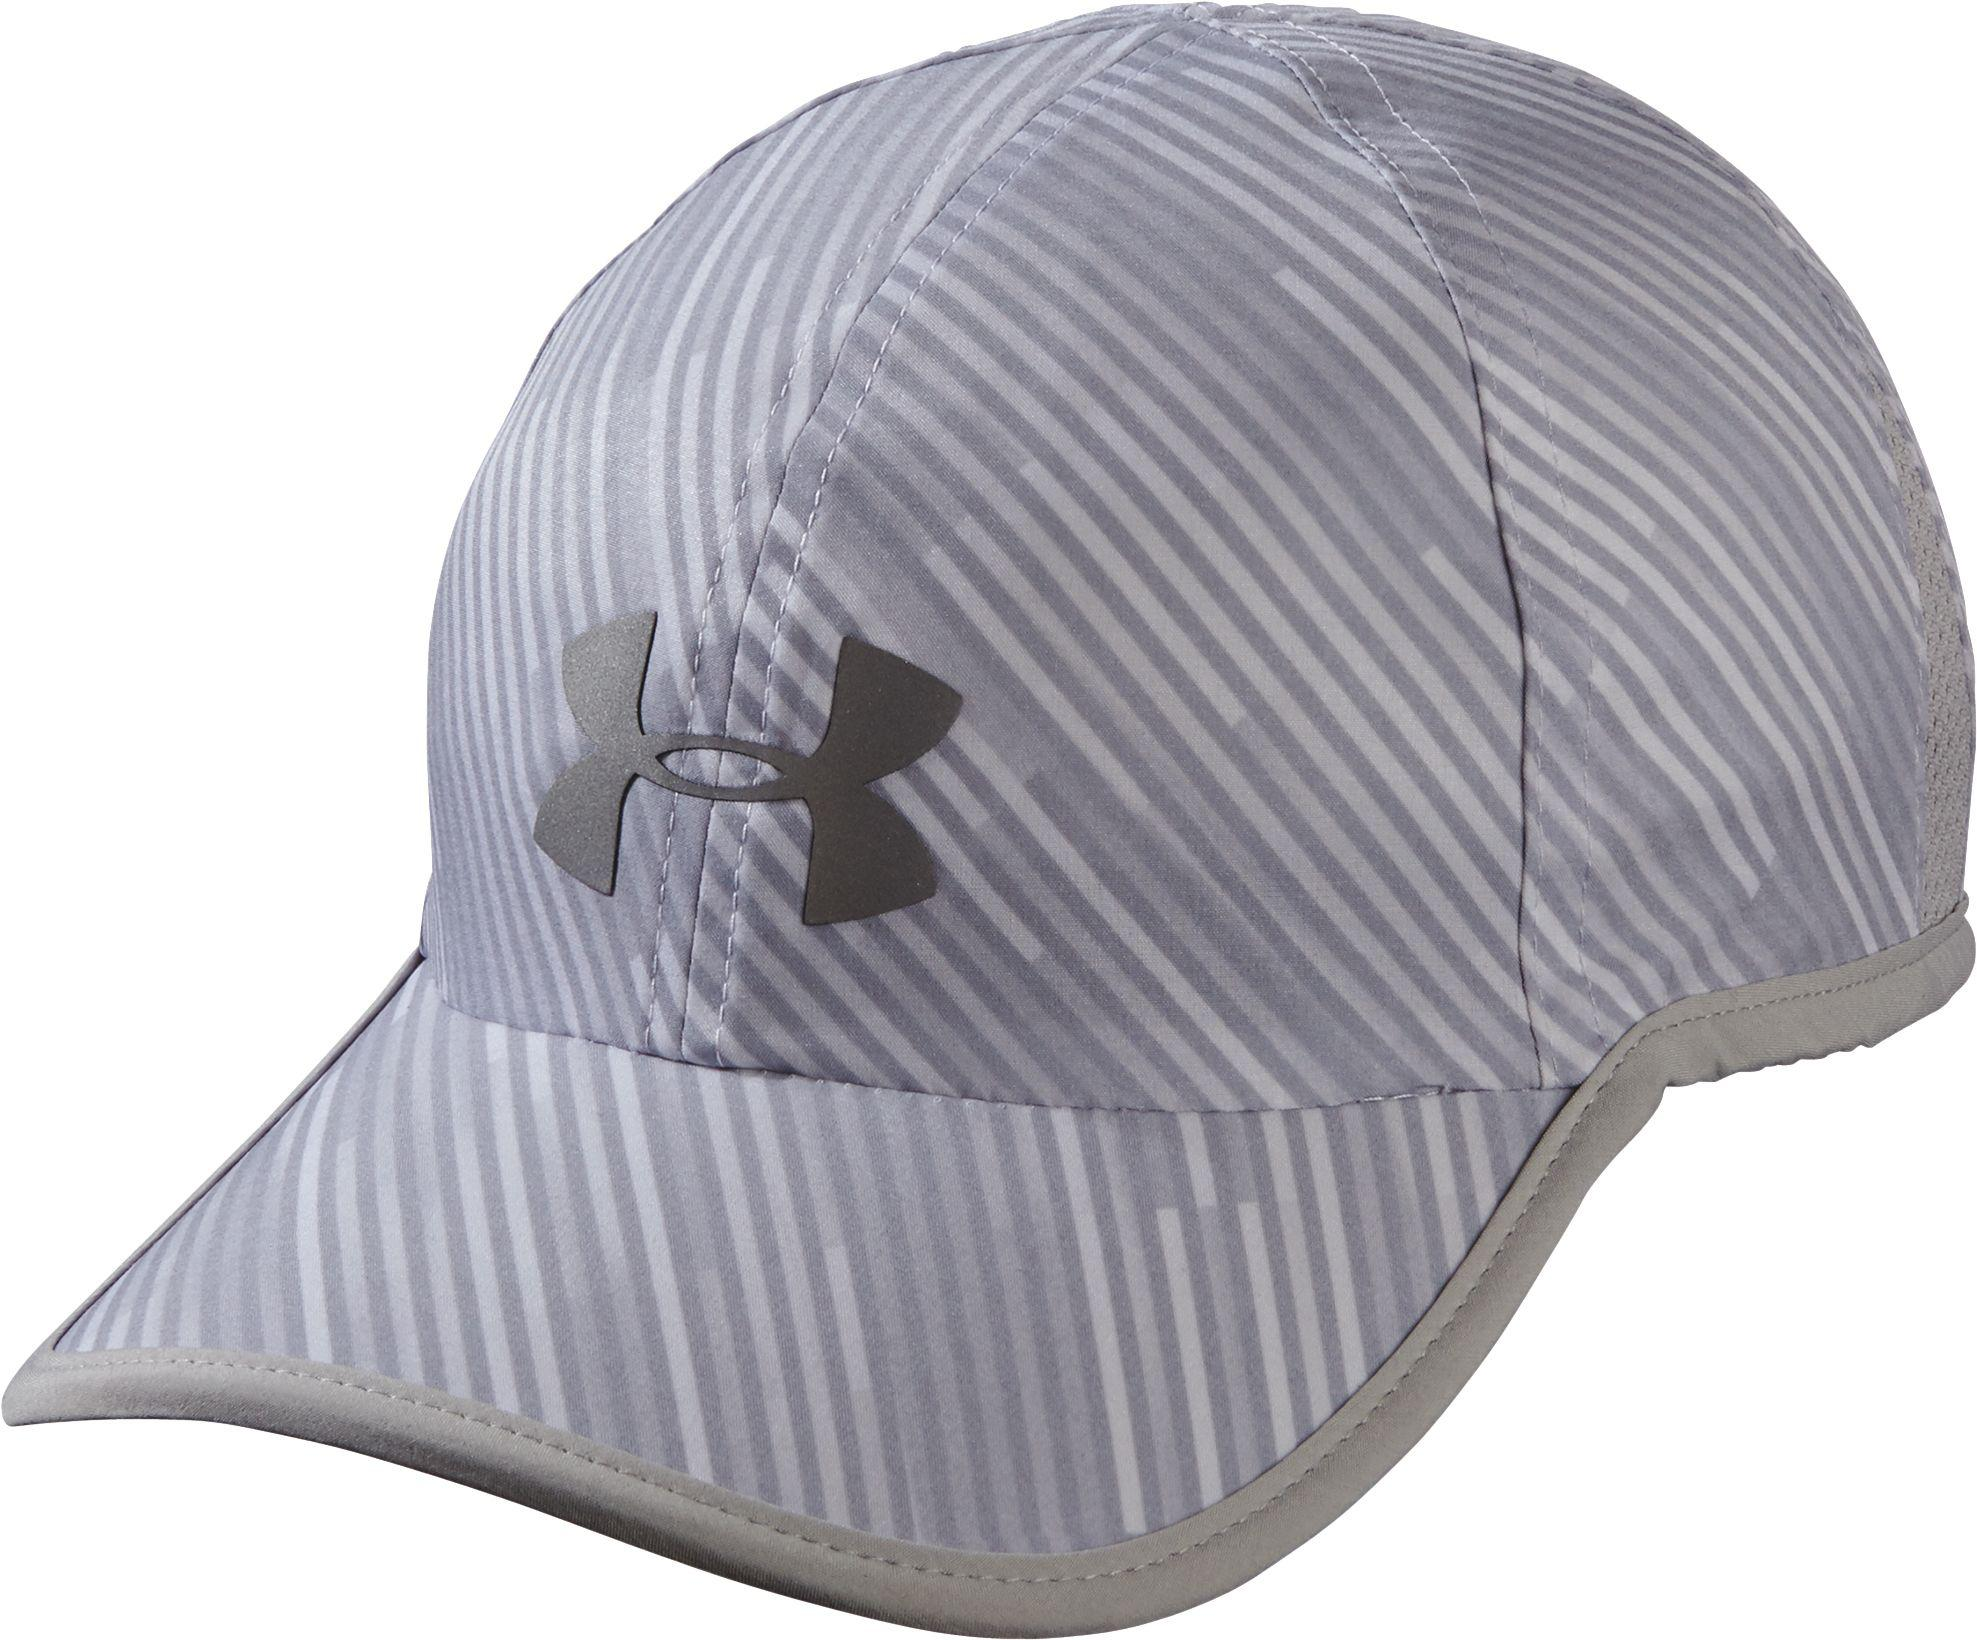 6bc84b017ed ... top quality lyst under armour shadow running hat 3.0 in gray for men  087fd ec6b1